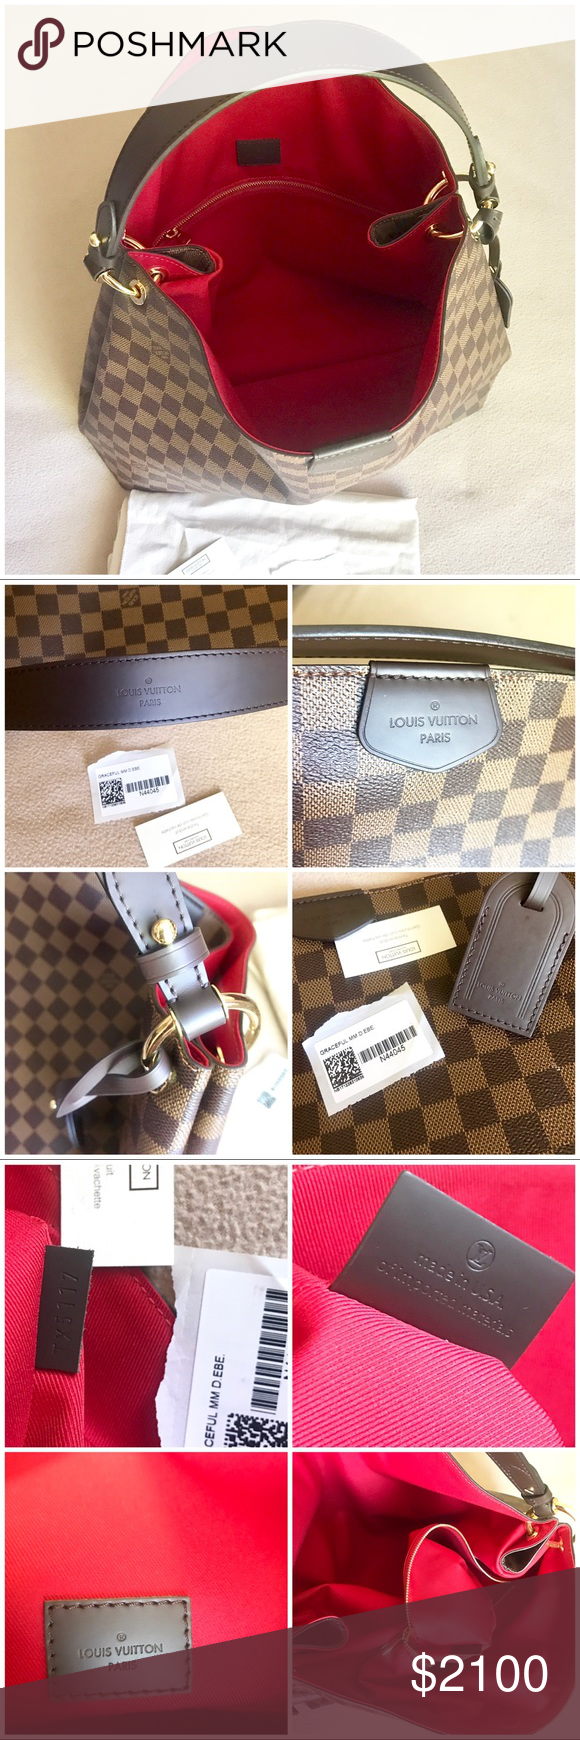 cd55100e5bcd 💯Authentic NWT Louis Vuitton Graceful MM DAMIER This is one gorgeous and  very versatile Bag that I just acquired and not in an hurry to let go .